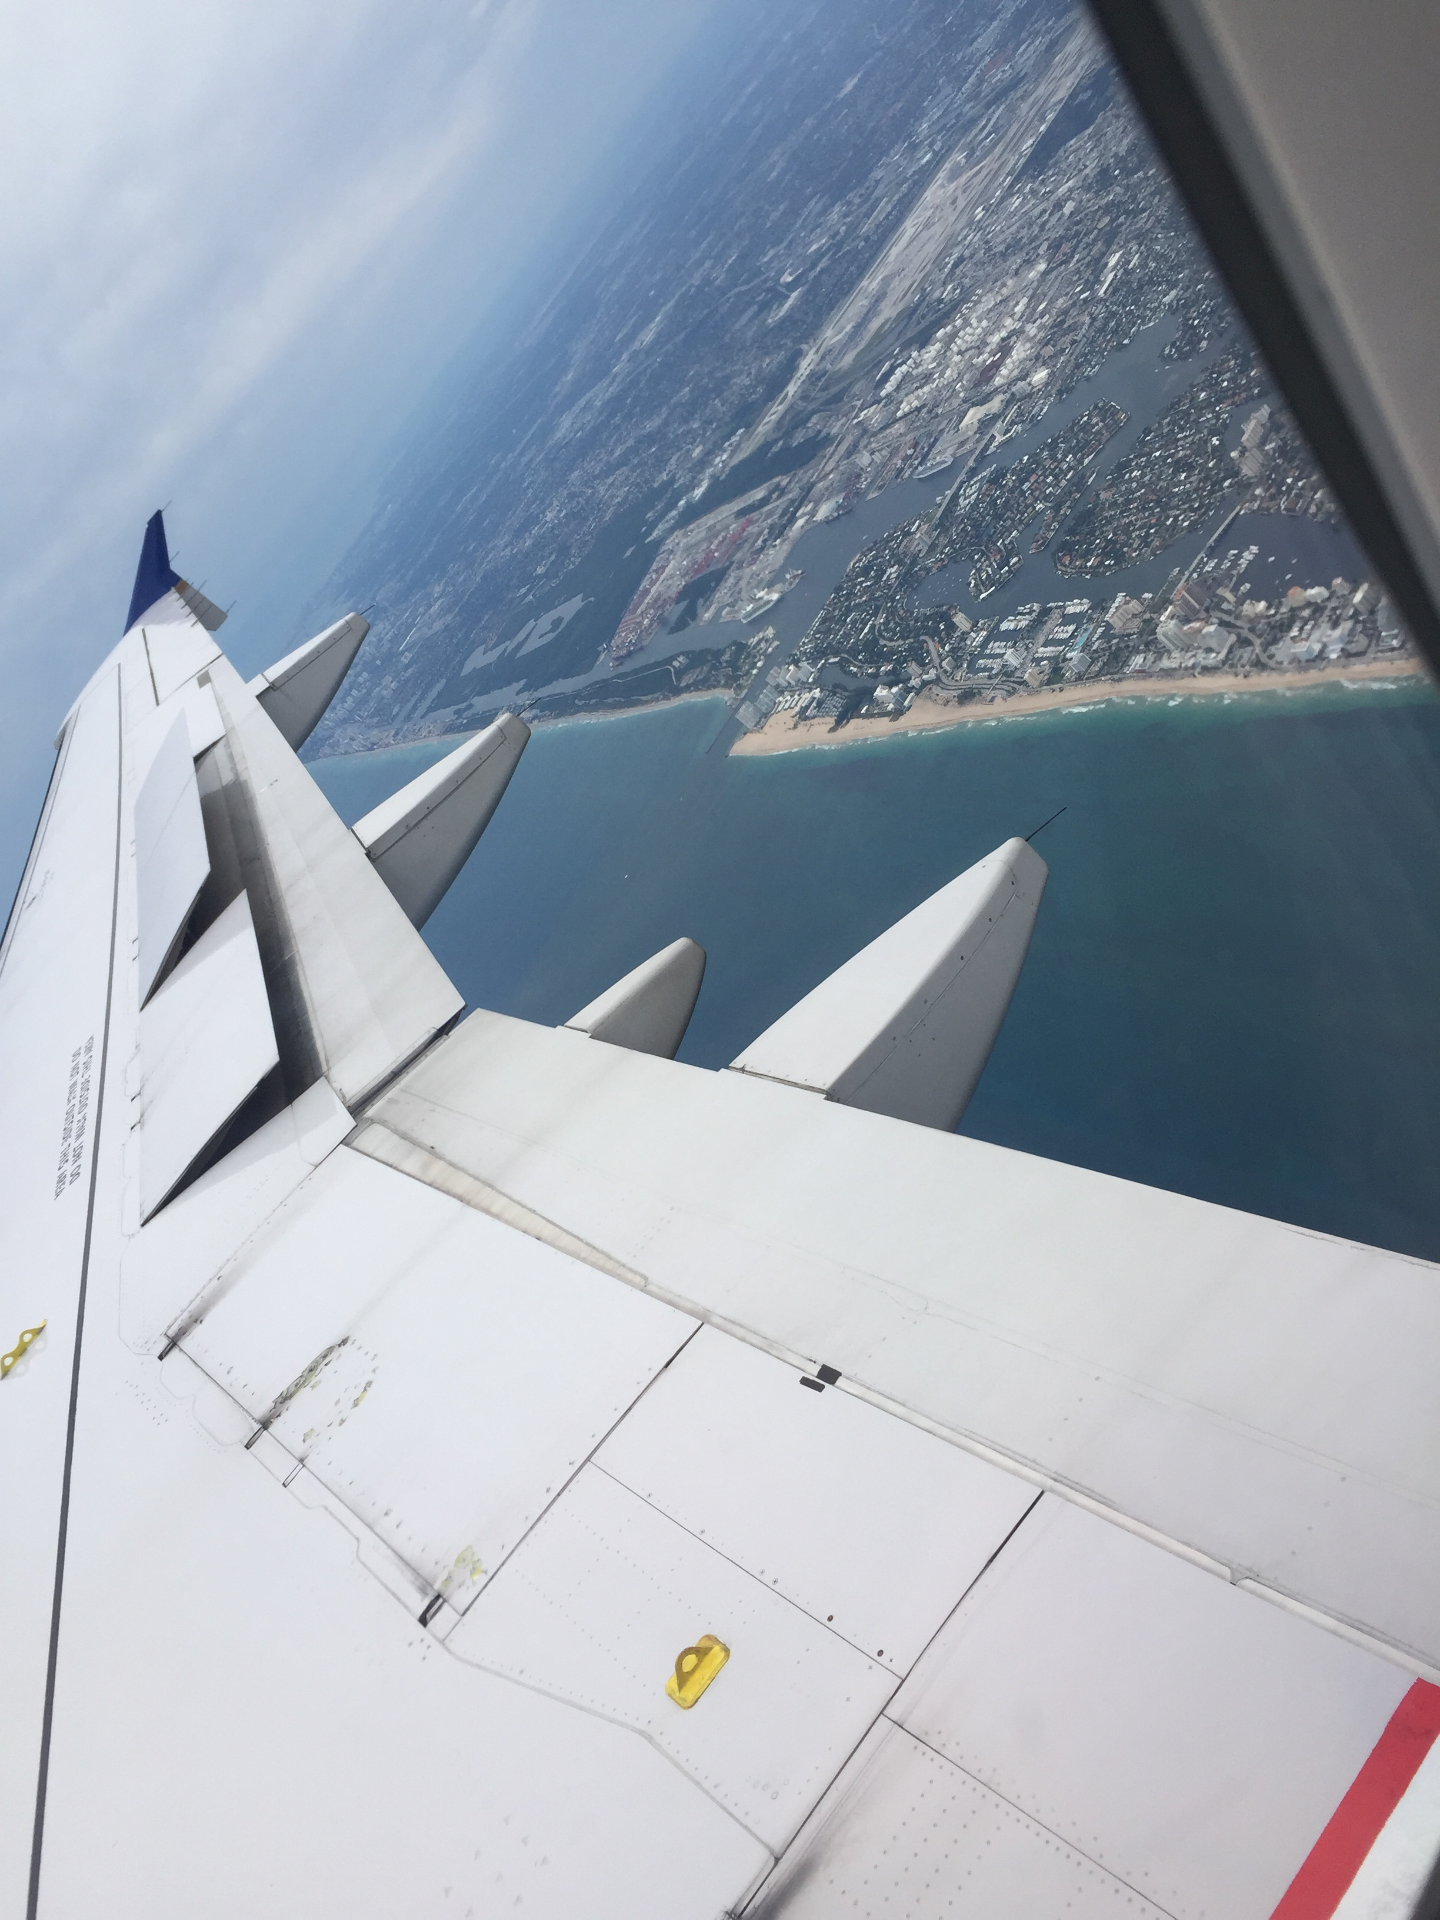 Circling to land in Ft. Lauderdale